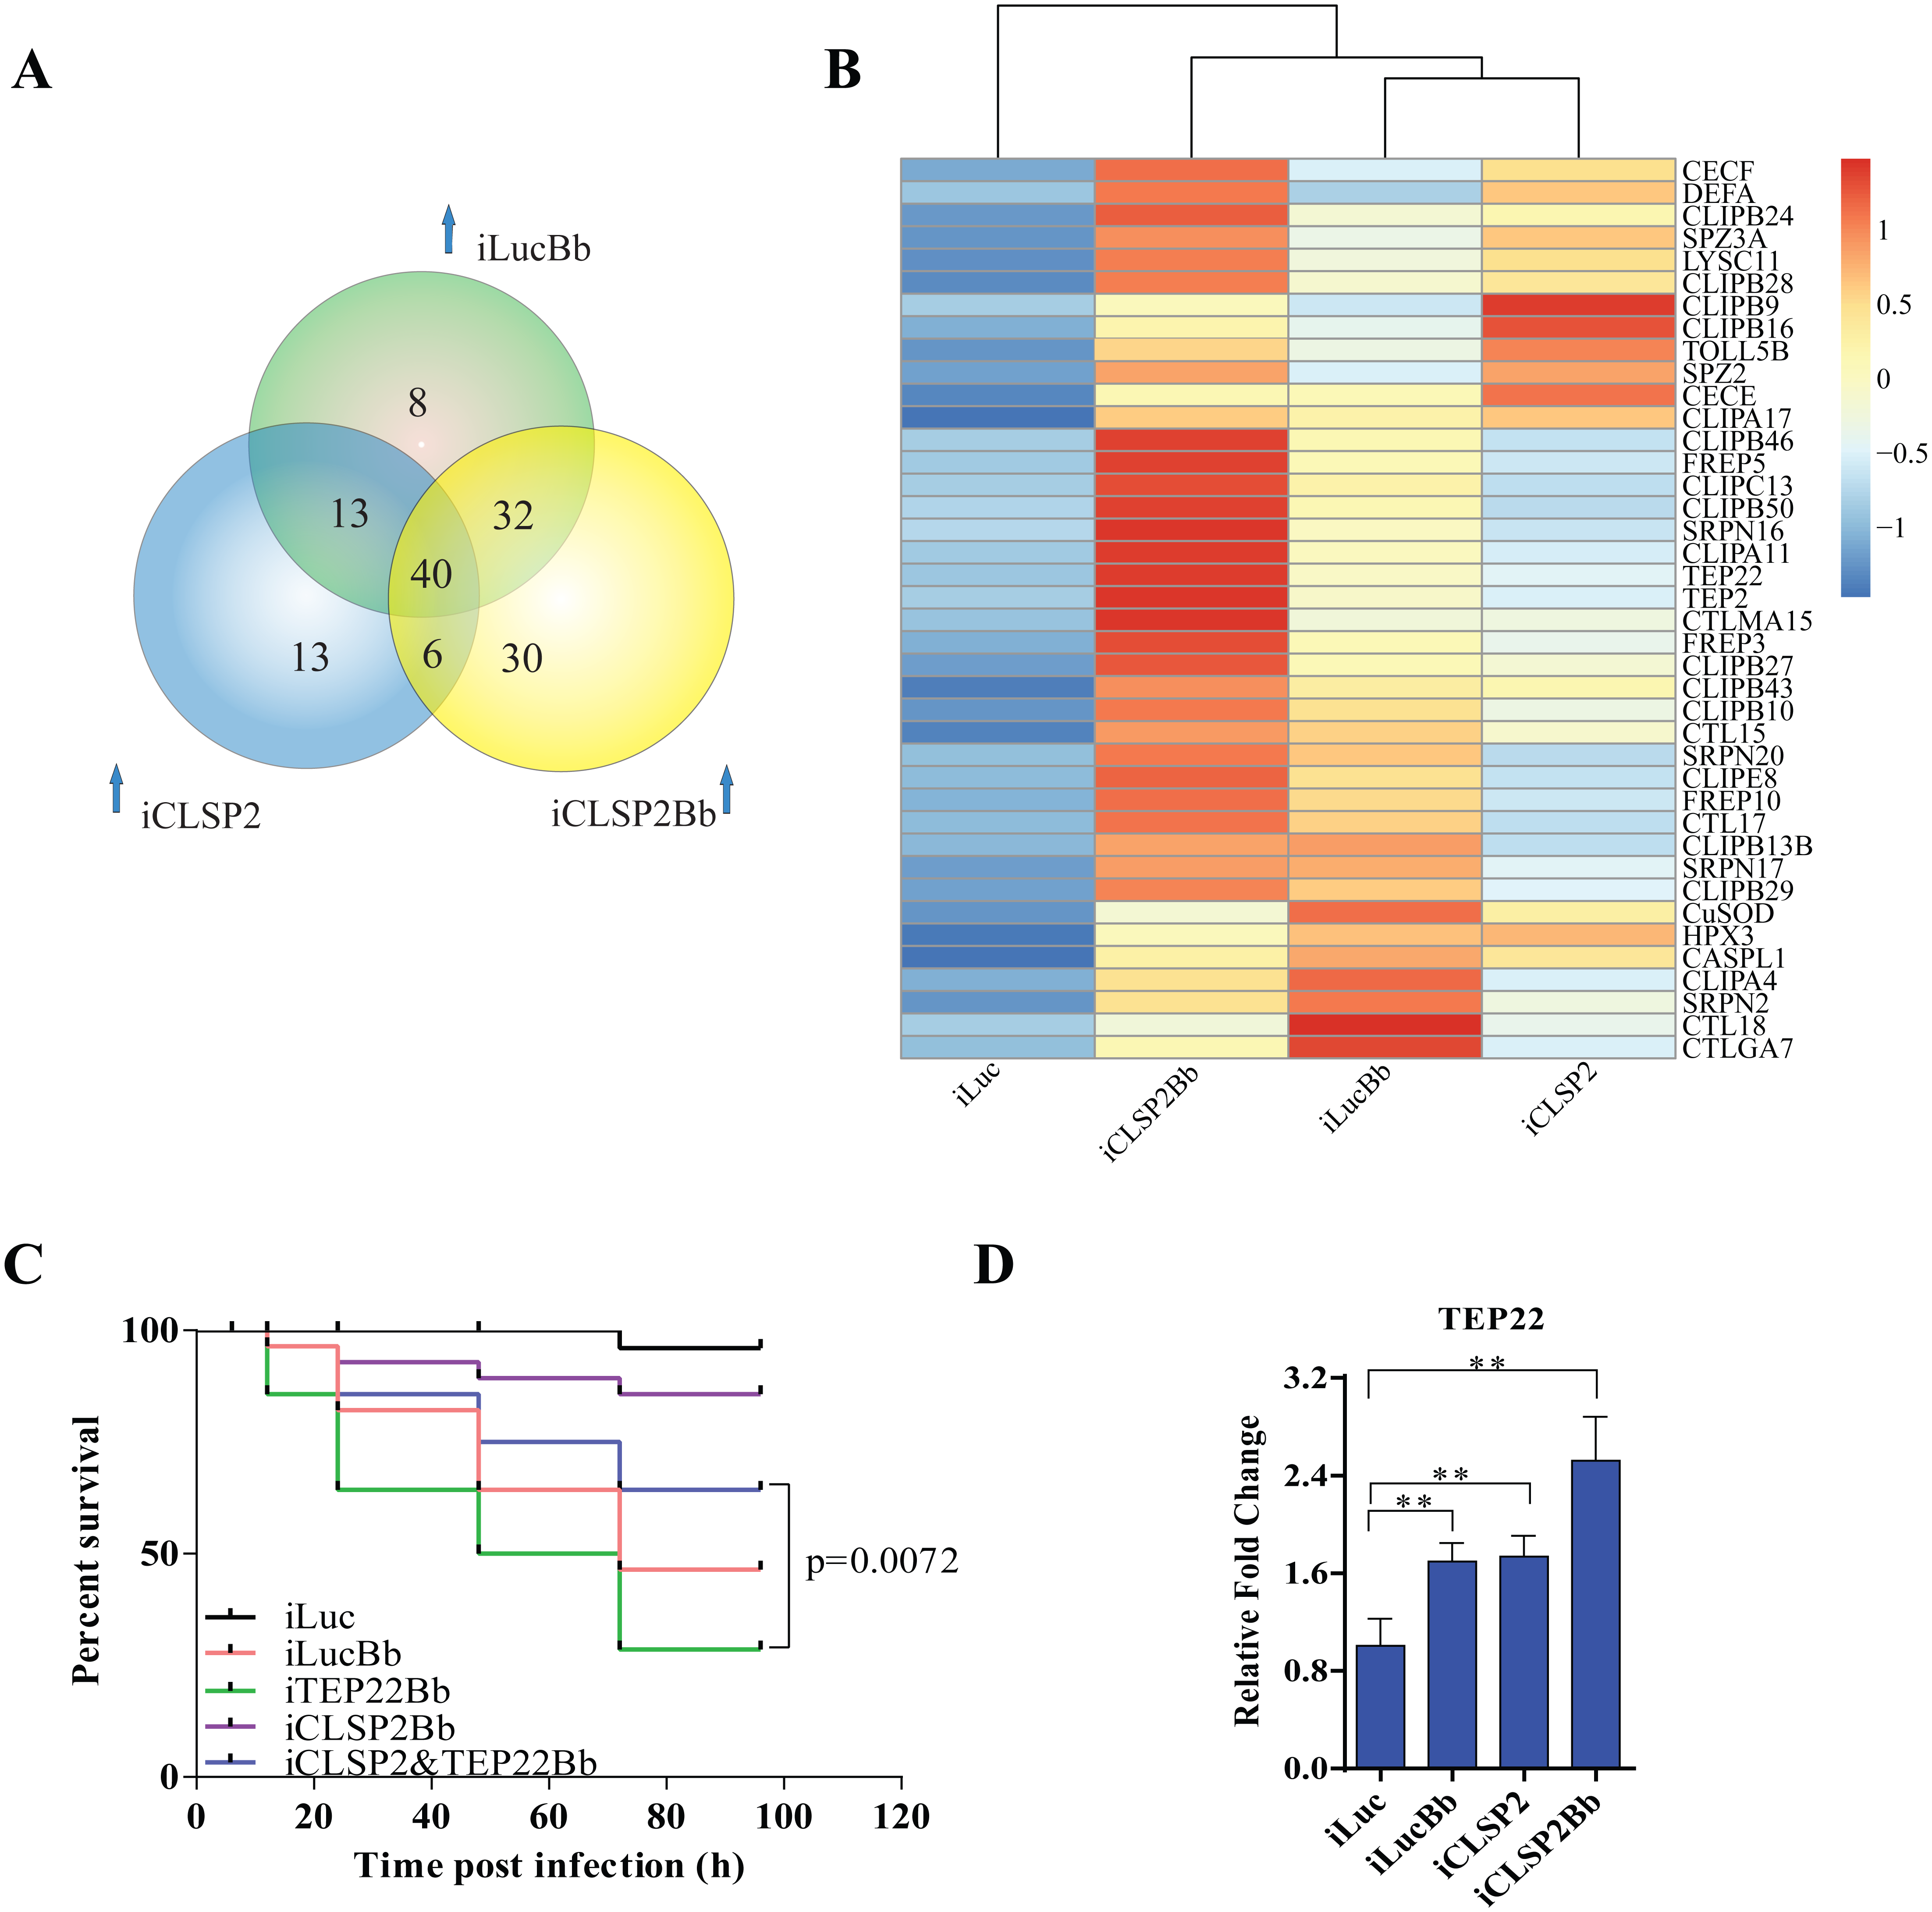 Comparative transcriptome analysis of CLSP2 modulation of immune genes and the role of TEP22 in anti-fungal defense.